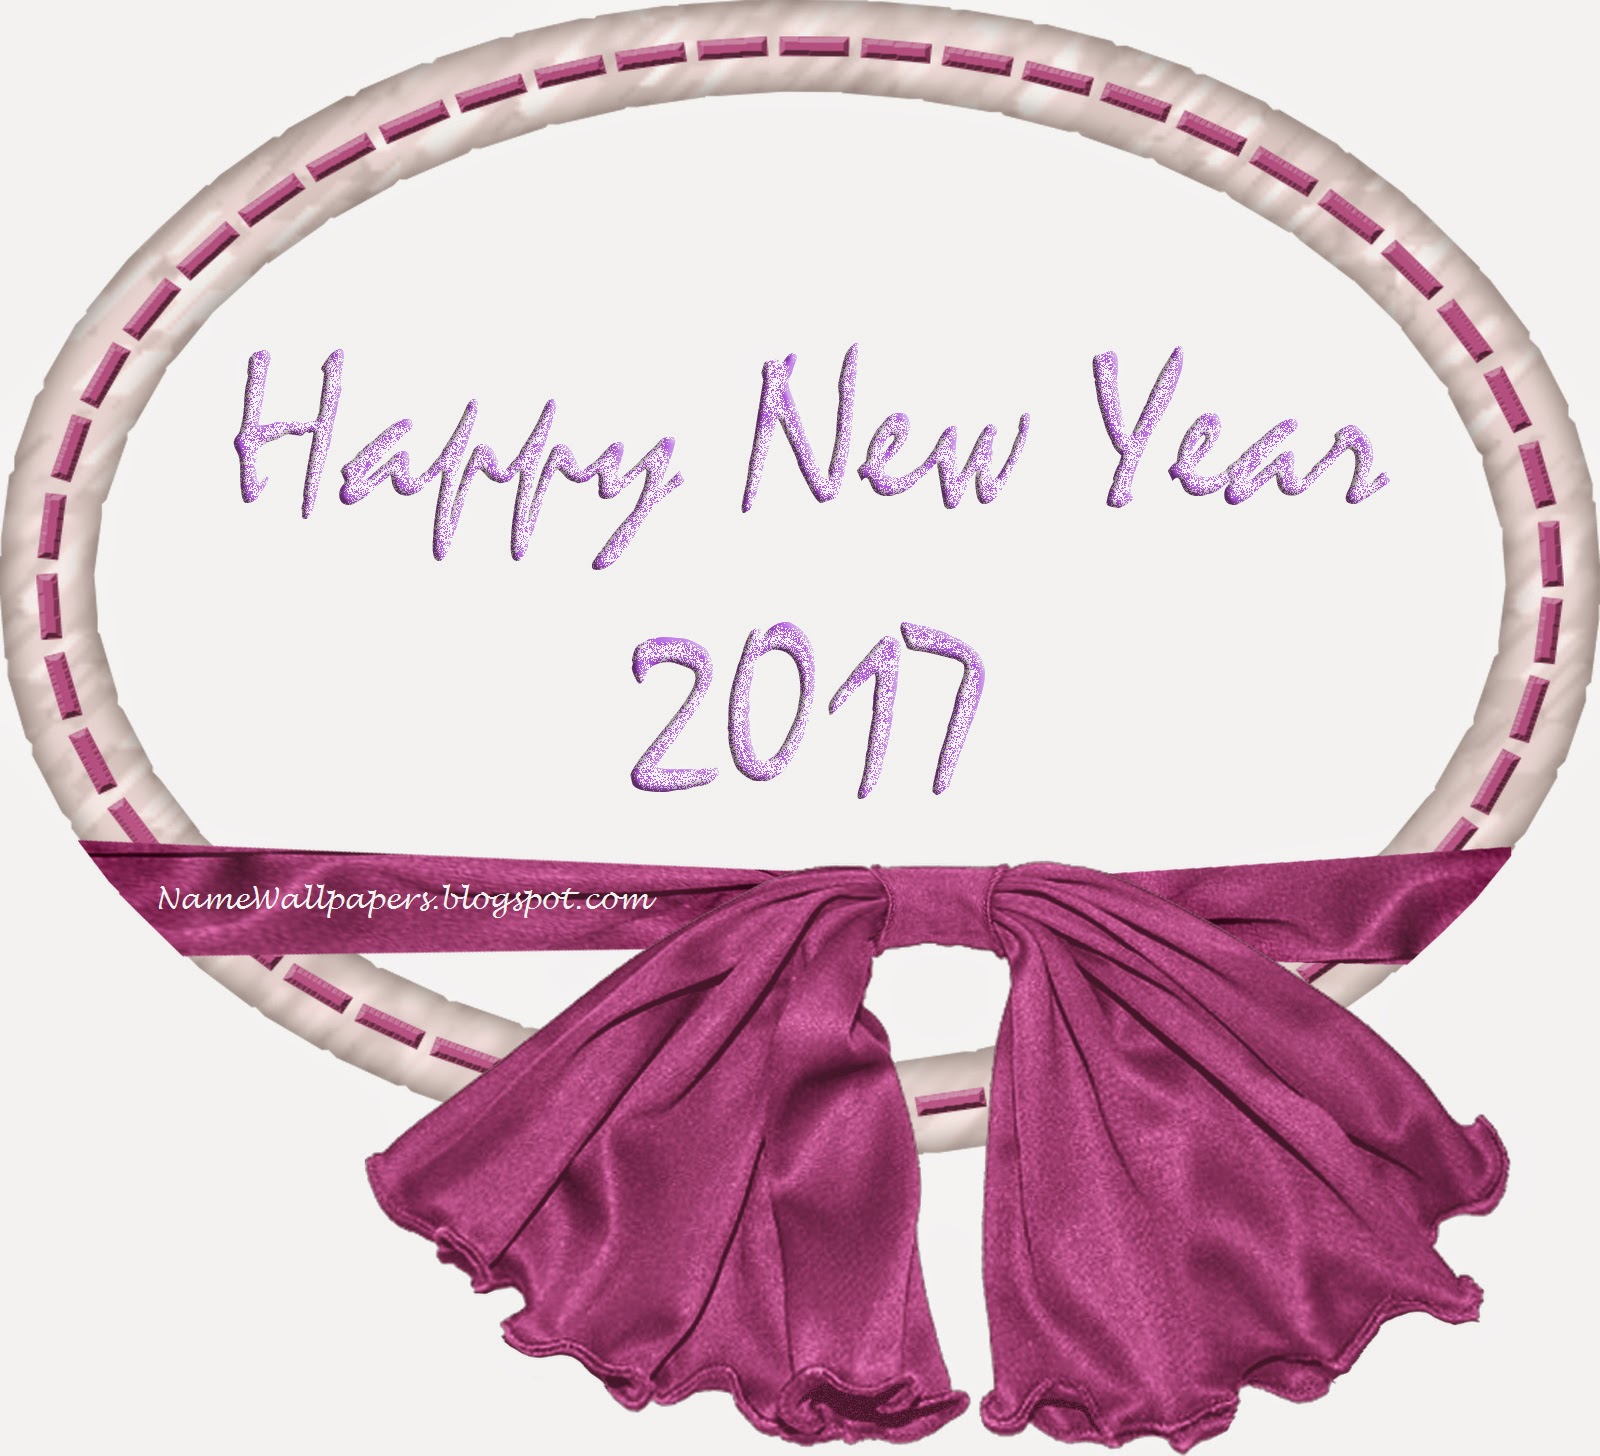 Wallpaper download of 2017 - Happy New Year 2017 Wallpapers Happy New Year 2017 Pictures